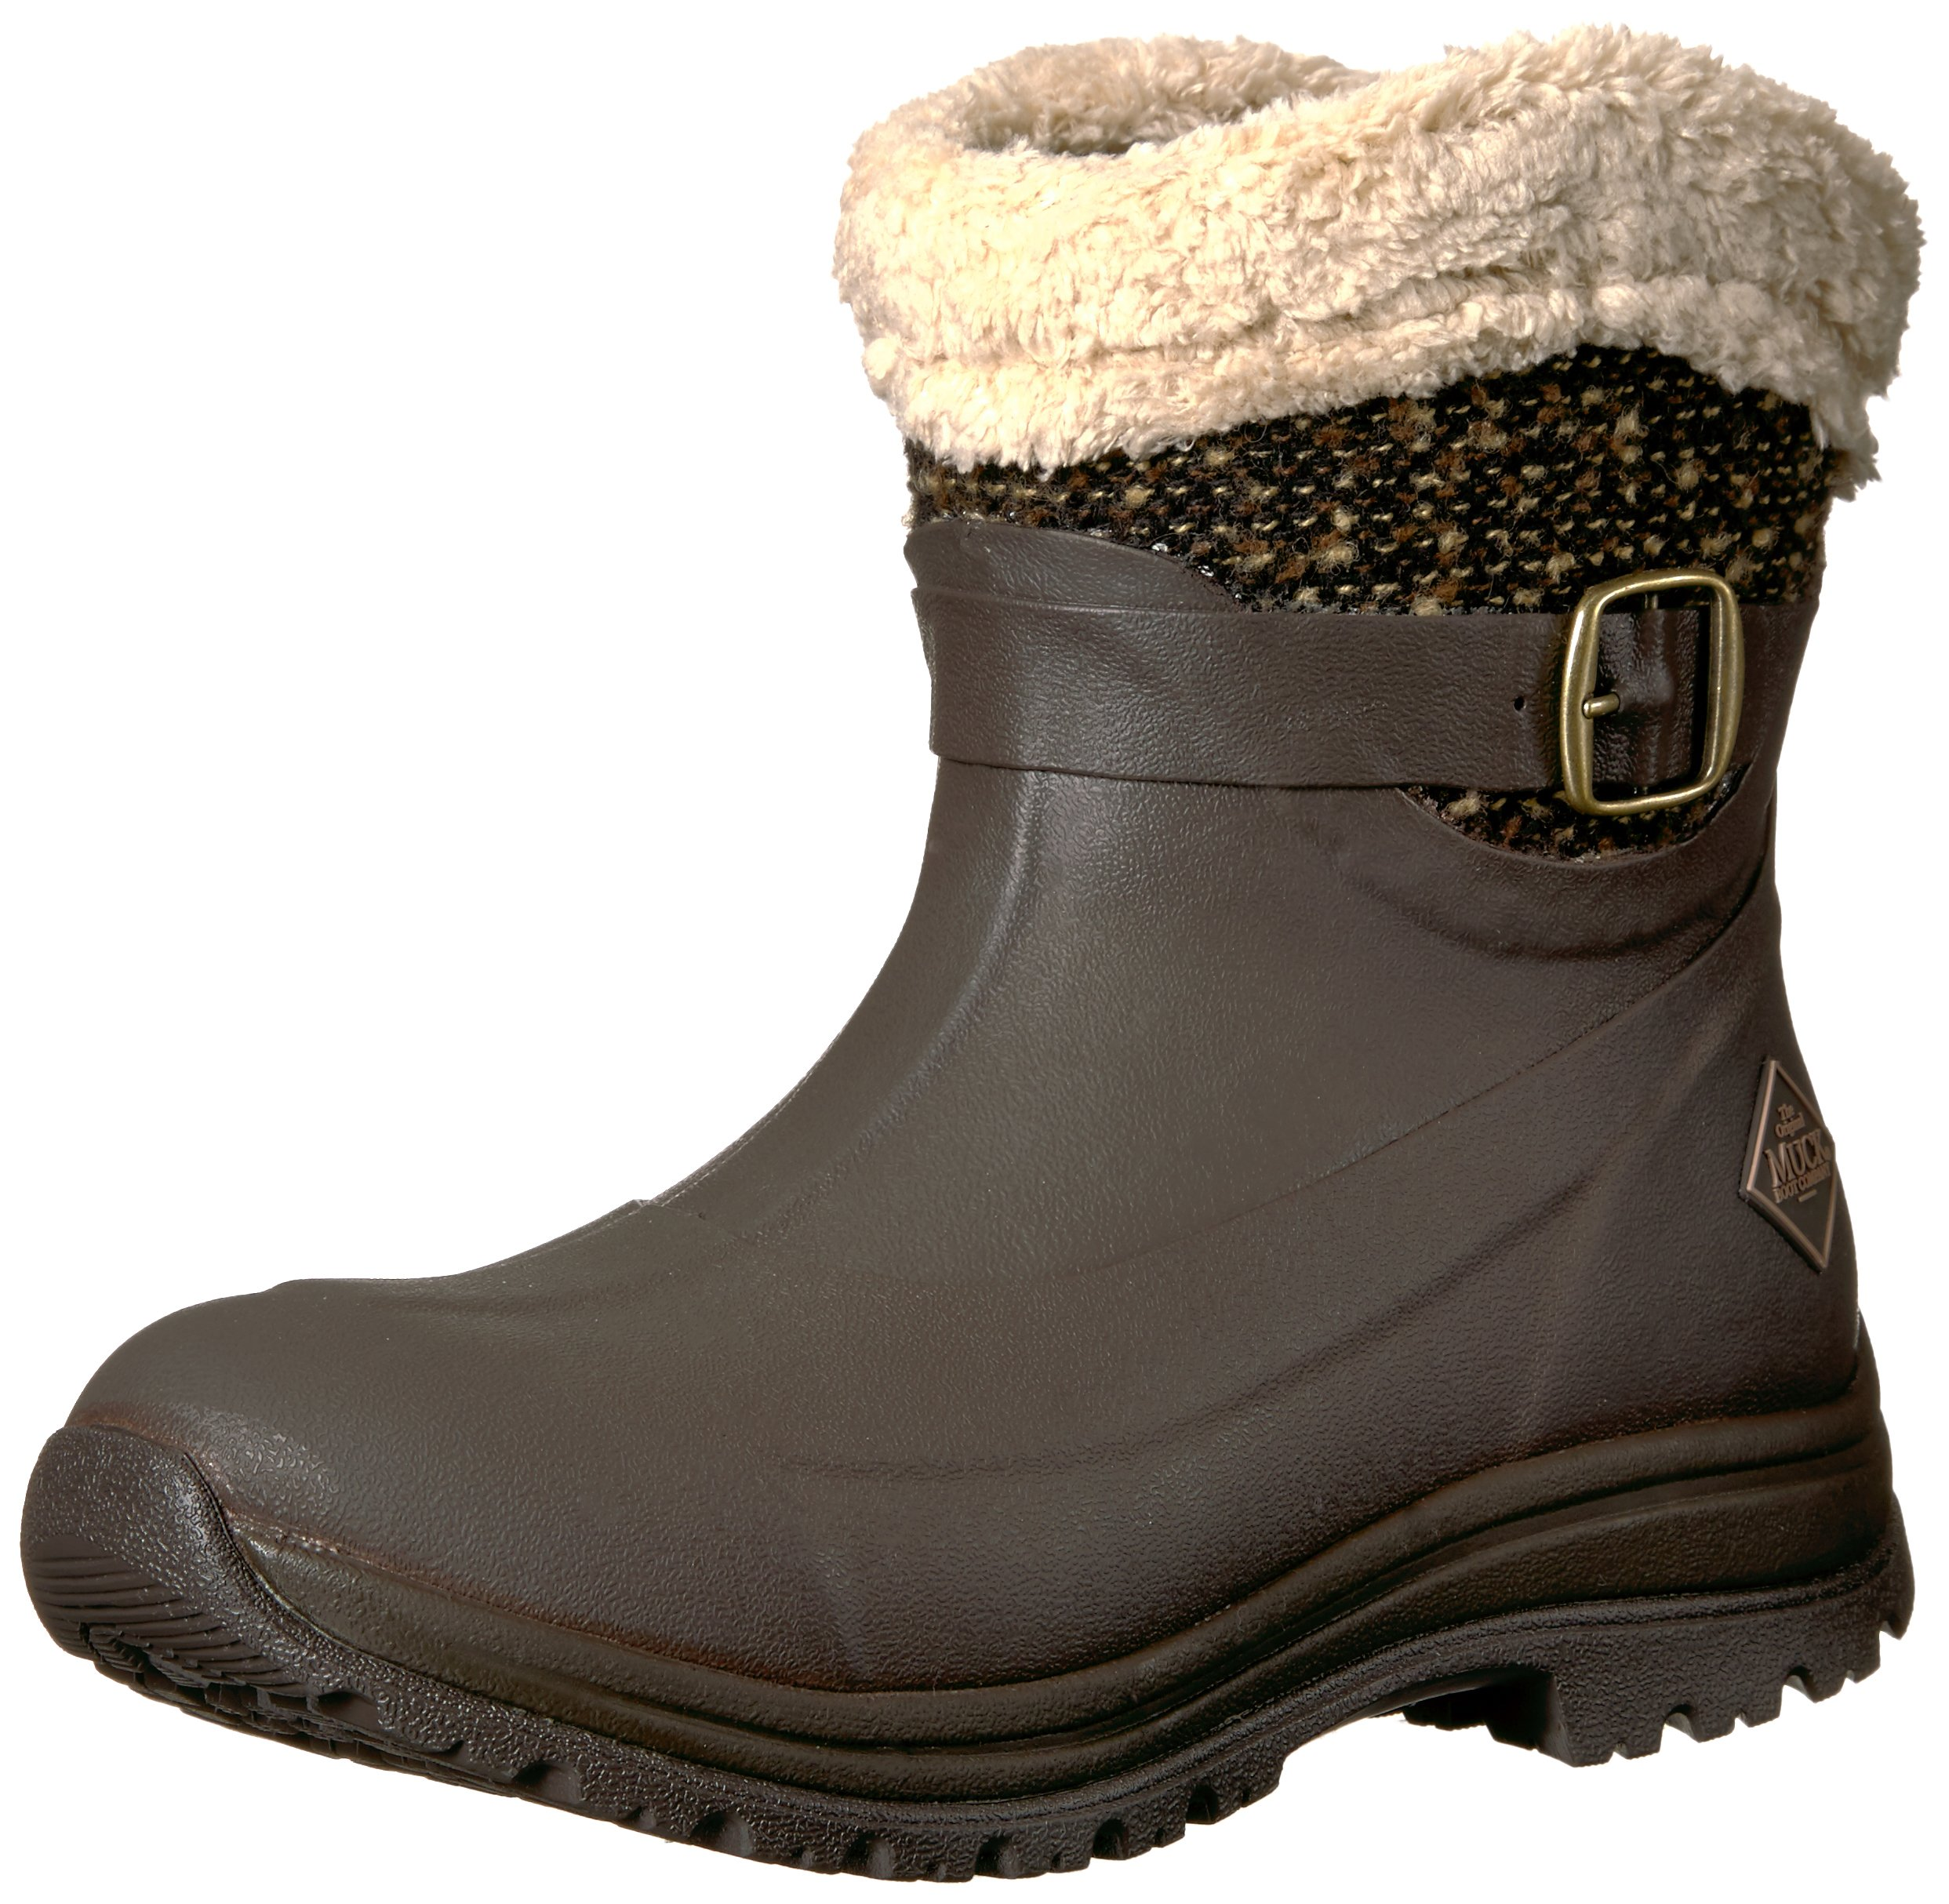 Muck Boot Women's Apres (Ankle) Supreme Work Boot, Brown, 9 M US by Muck Boot